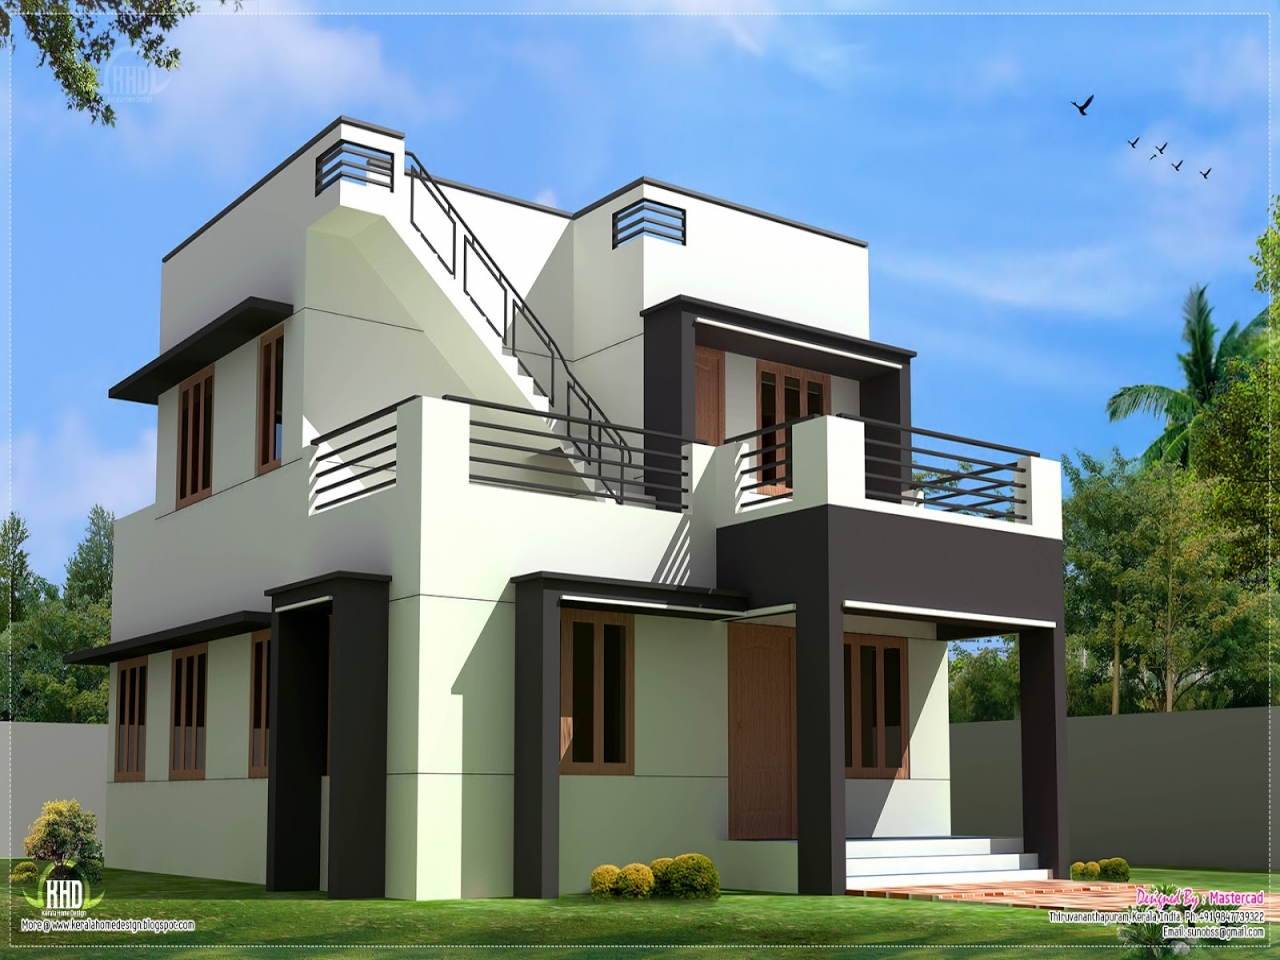 Beautiful Two Story House Collection 50 Beautiful Narrow House Design For A 2 Story